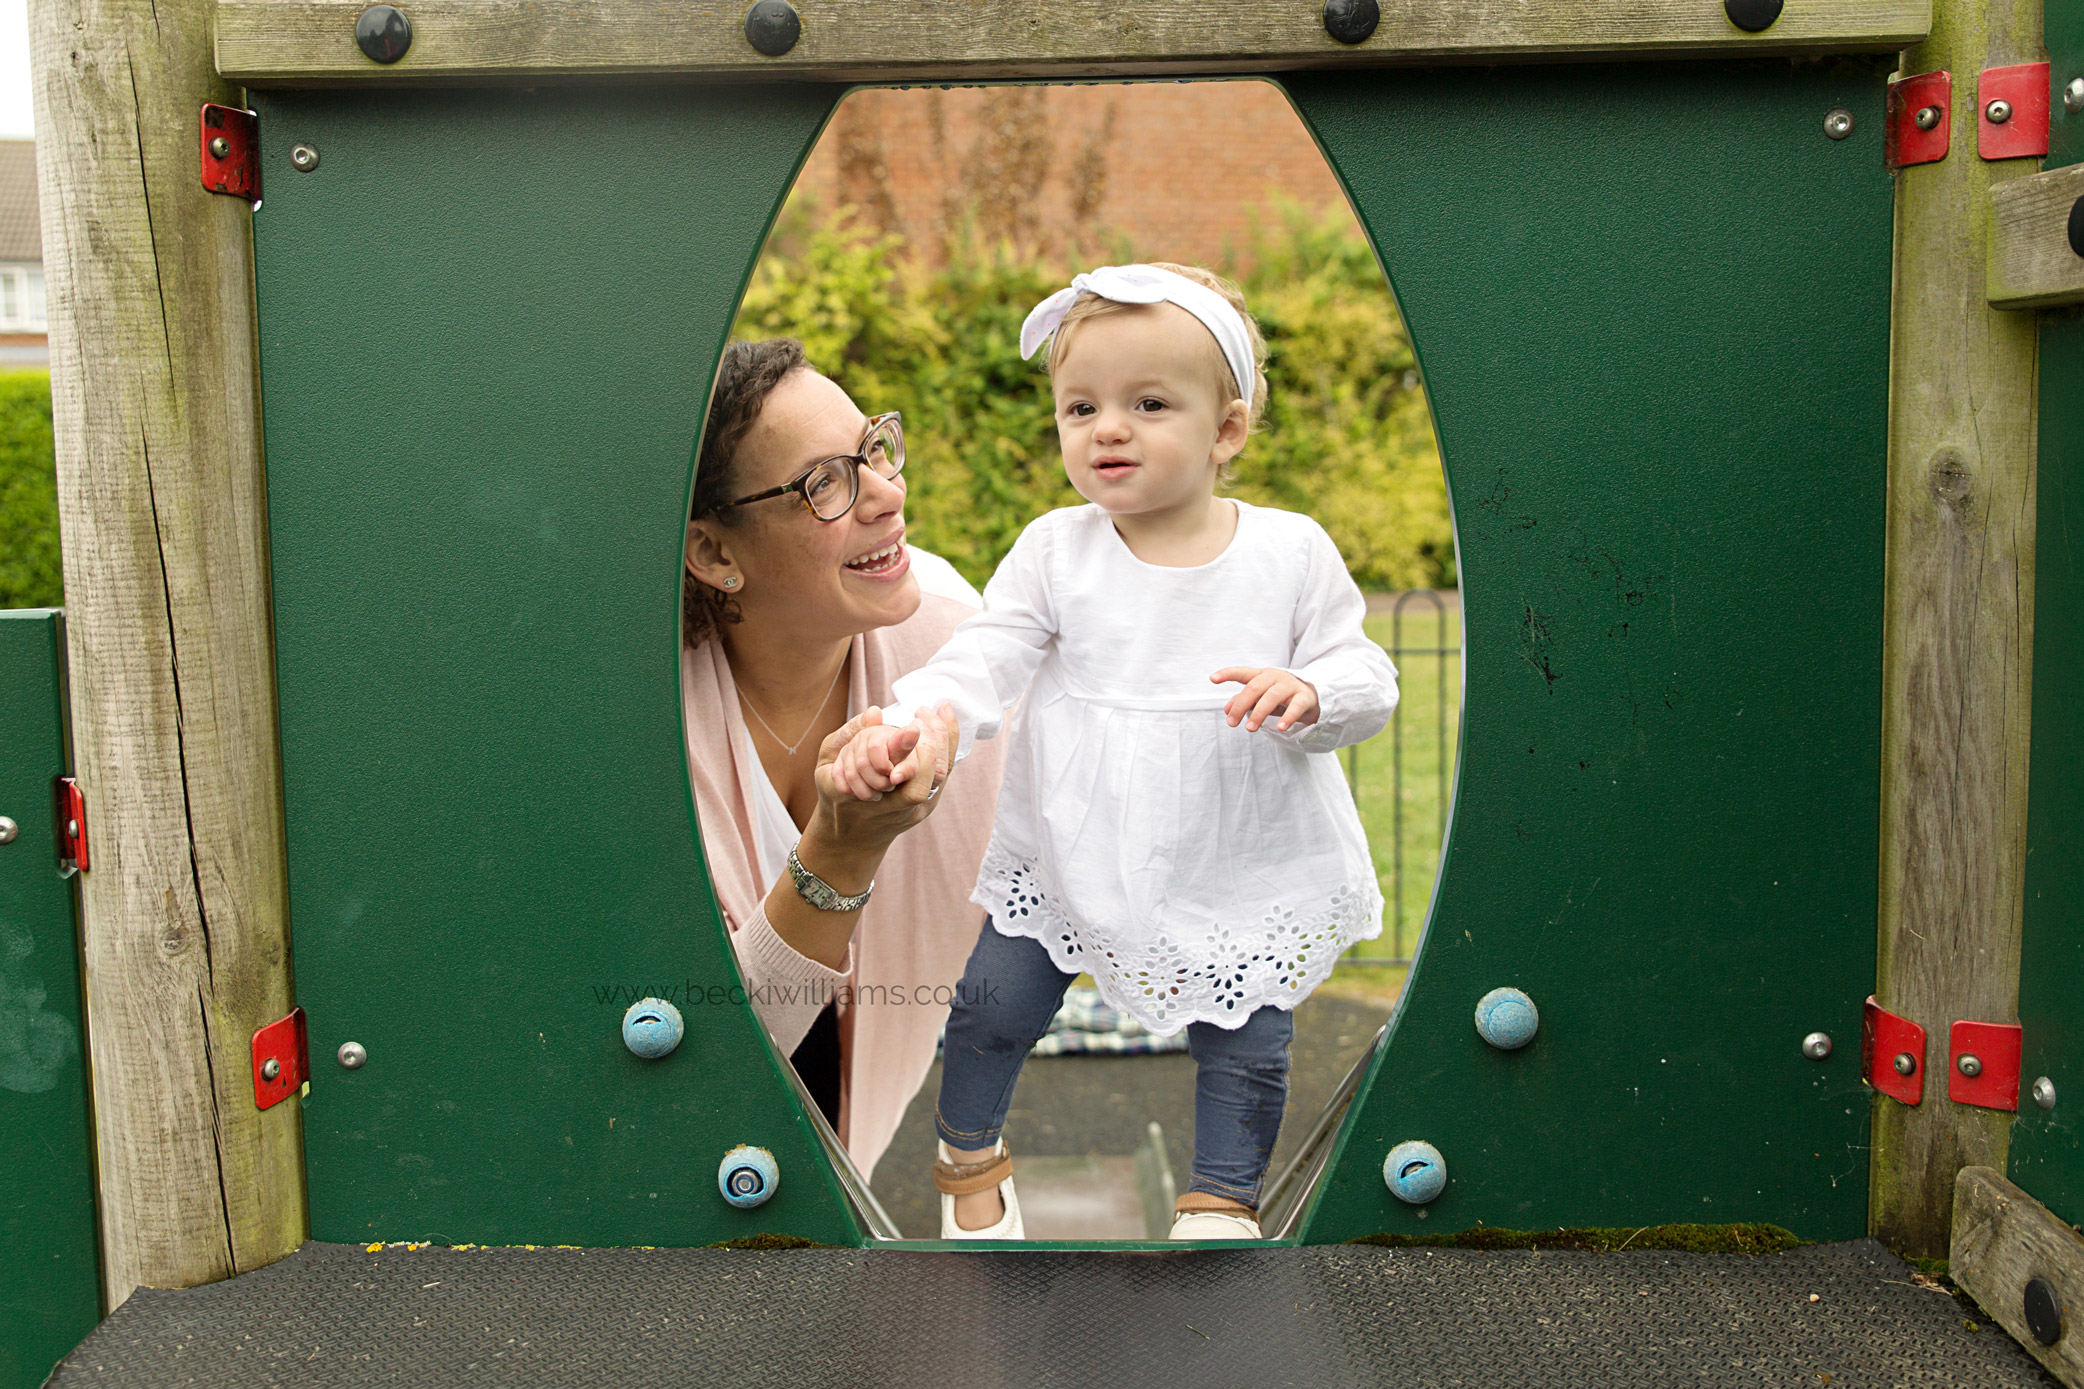 1 year old with mum in a park, playing